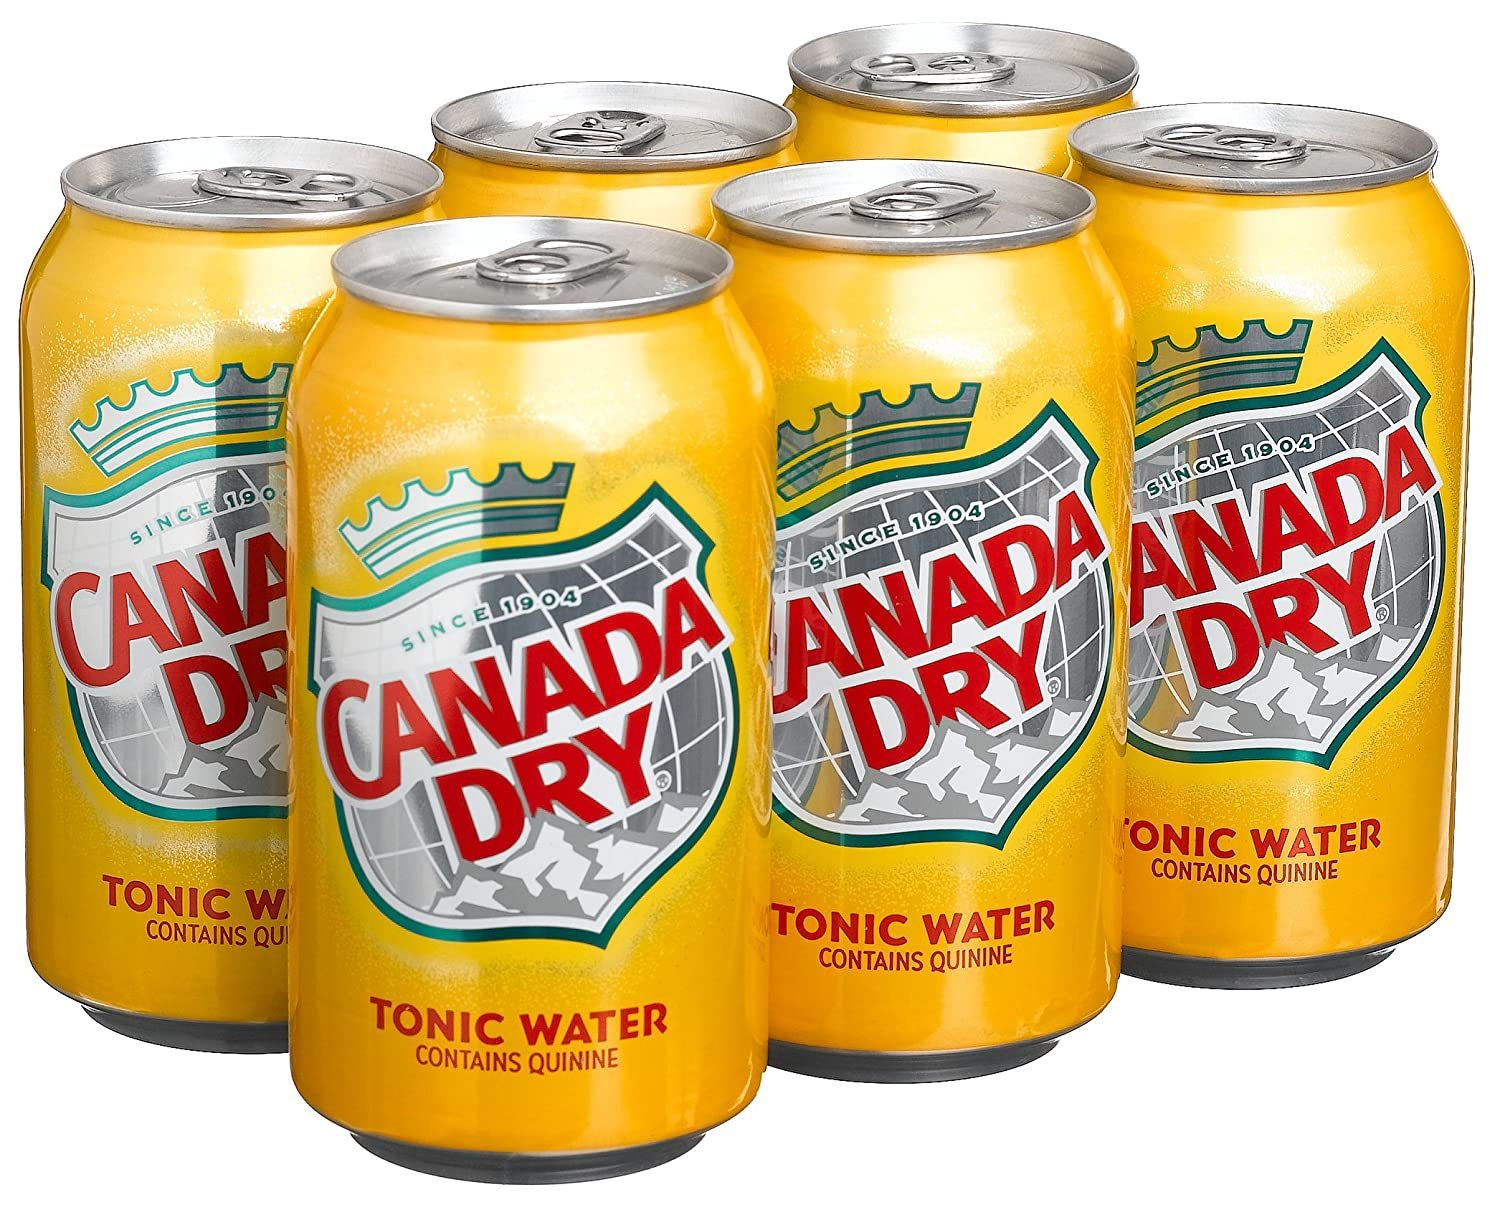 stm>Canada Dry Tonic Water, 6 pack